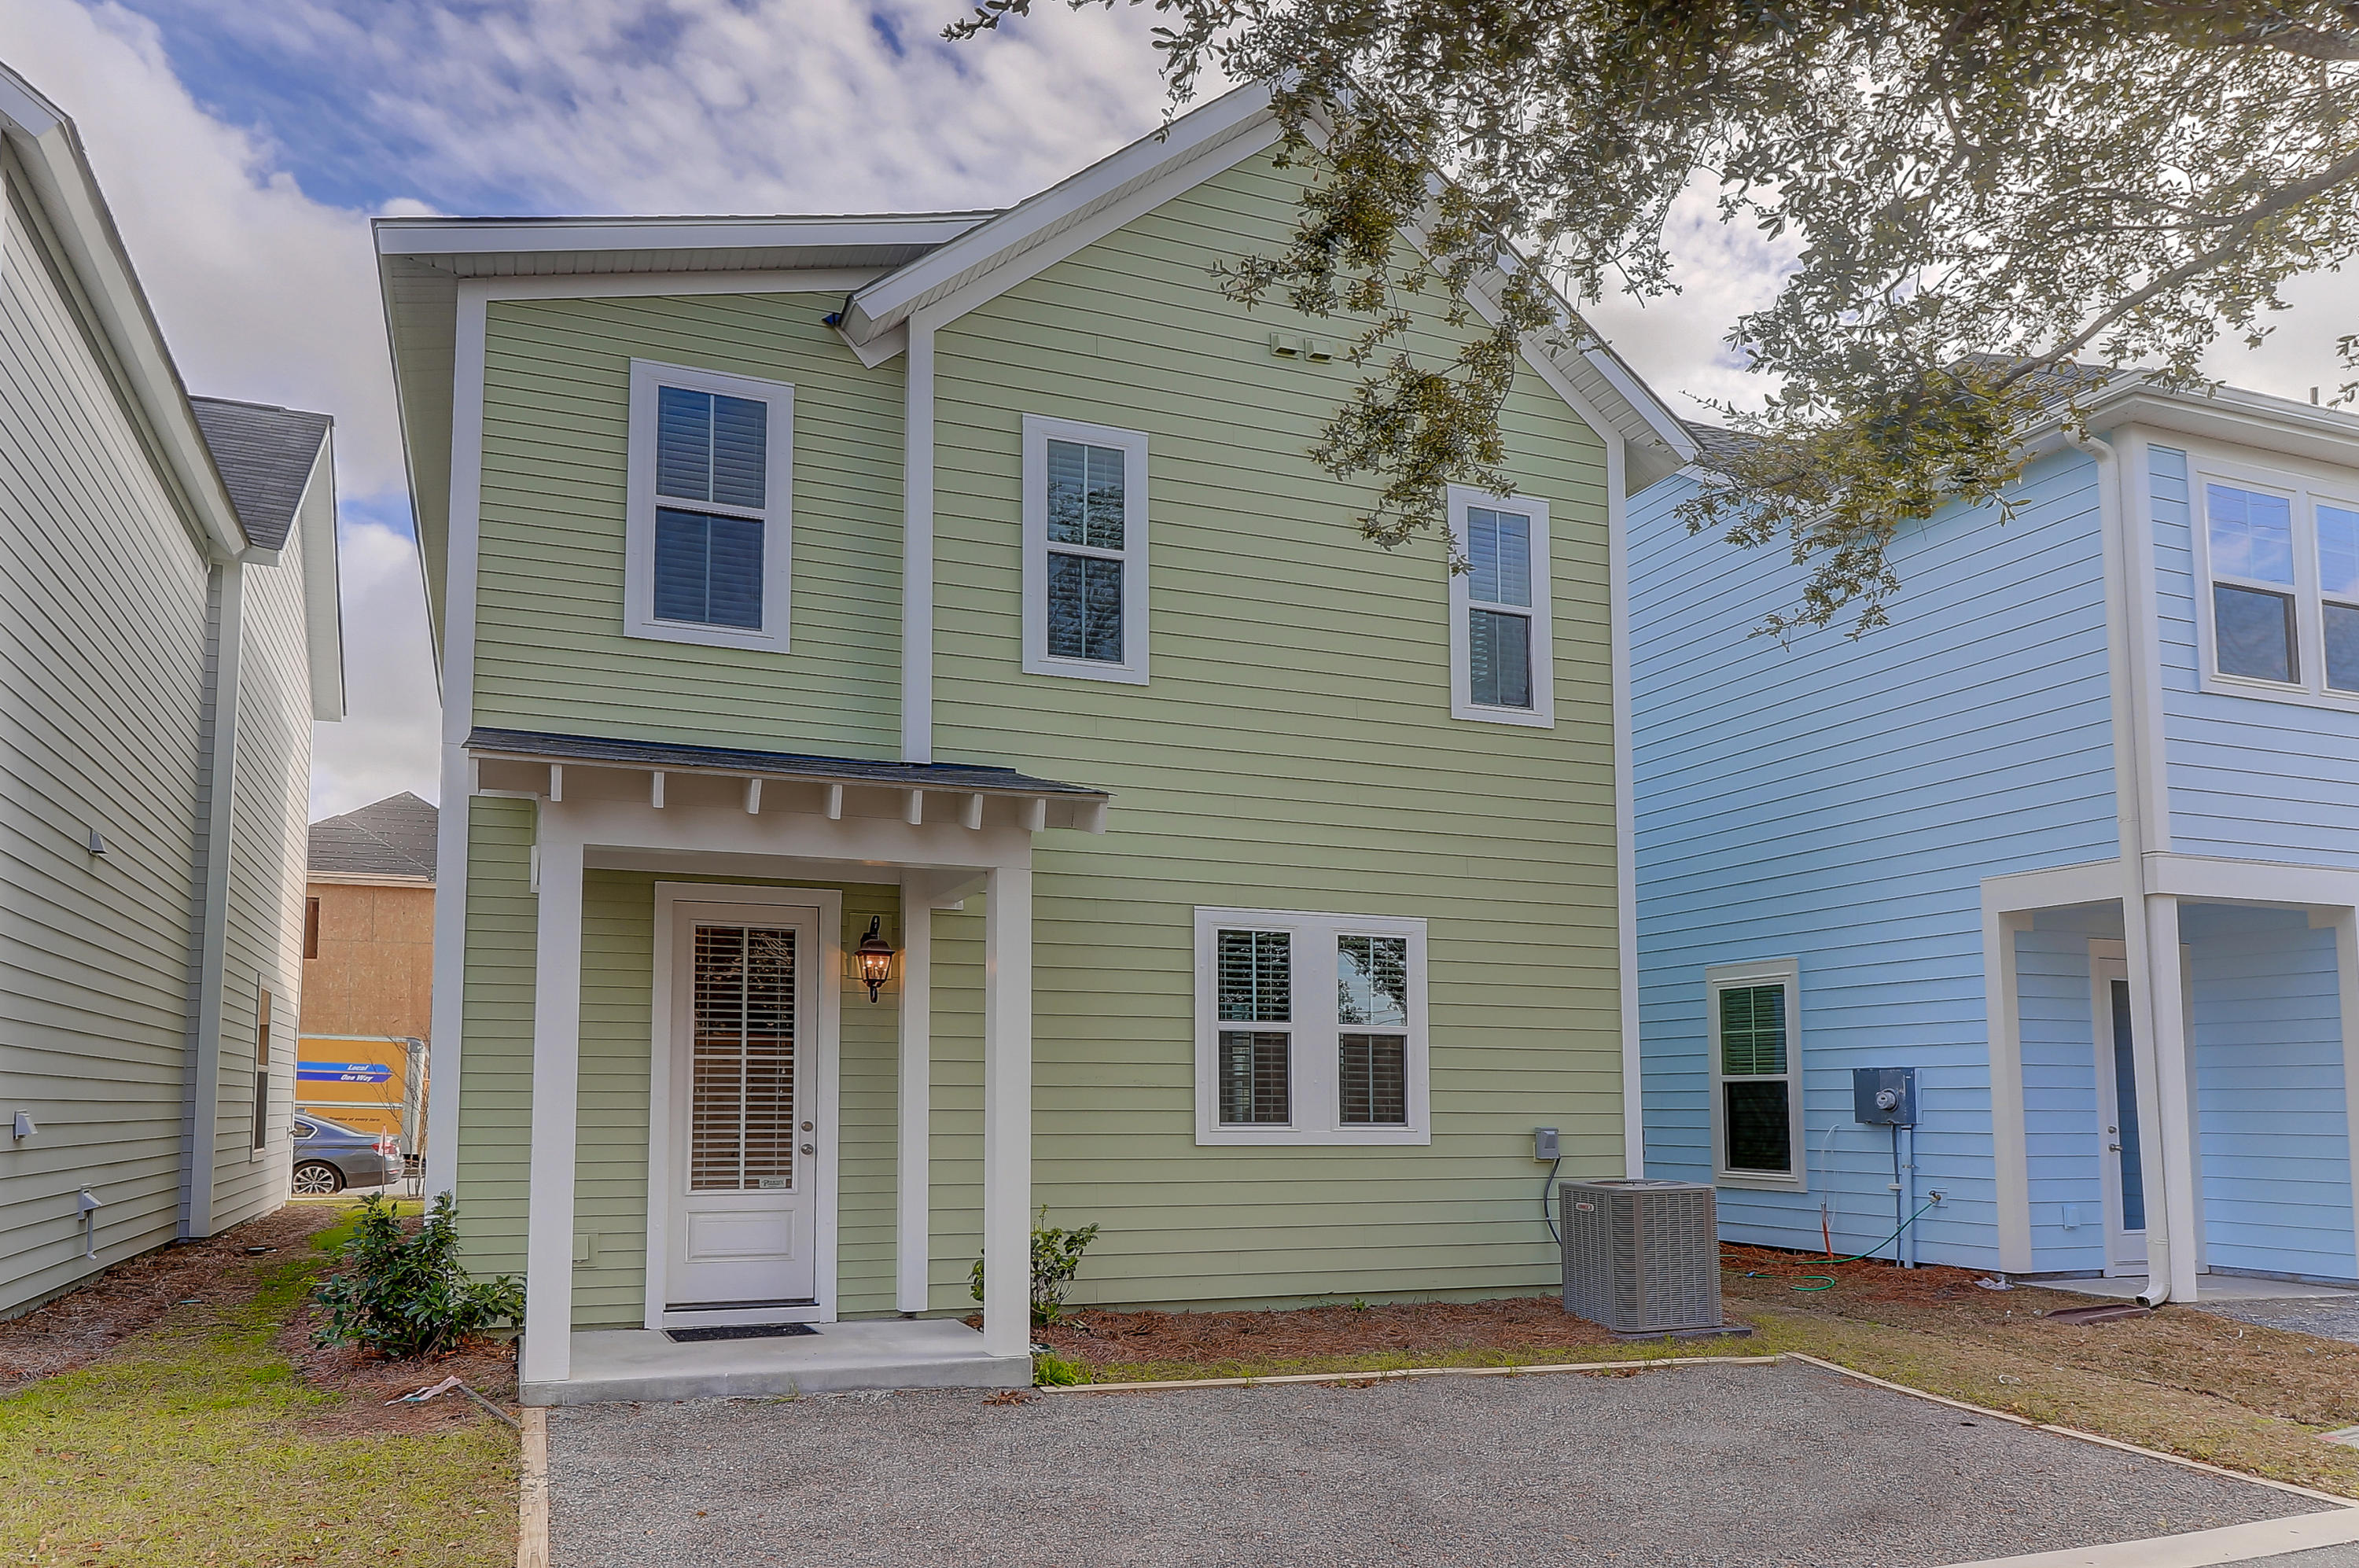 Photo of 1657 Indy Dr, North Charleston, SC 29405